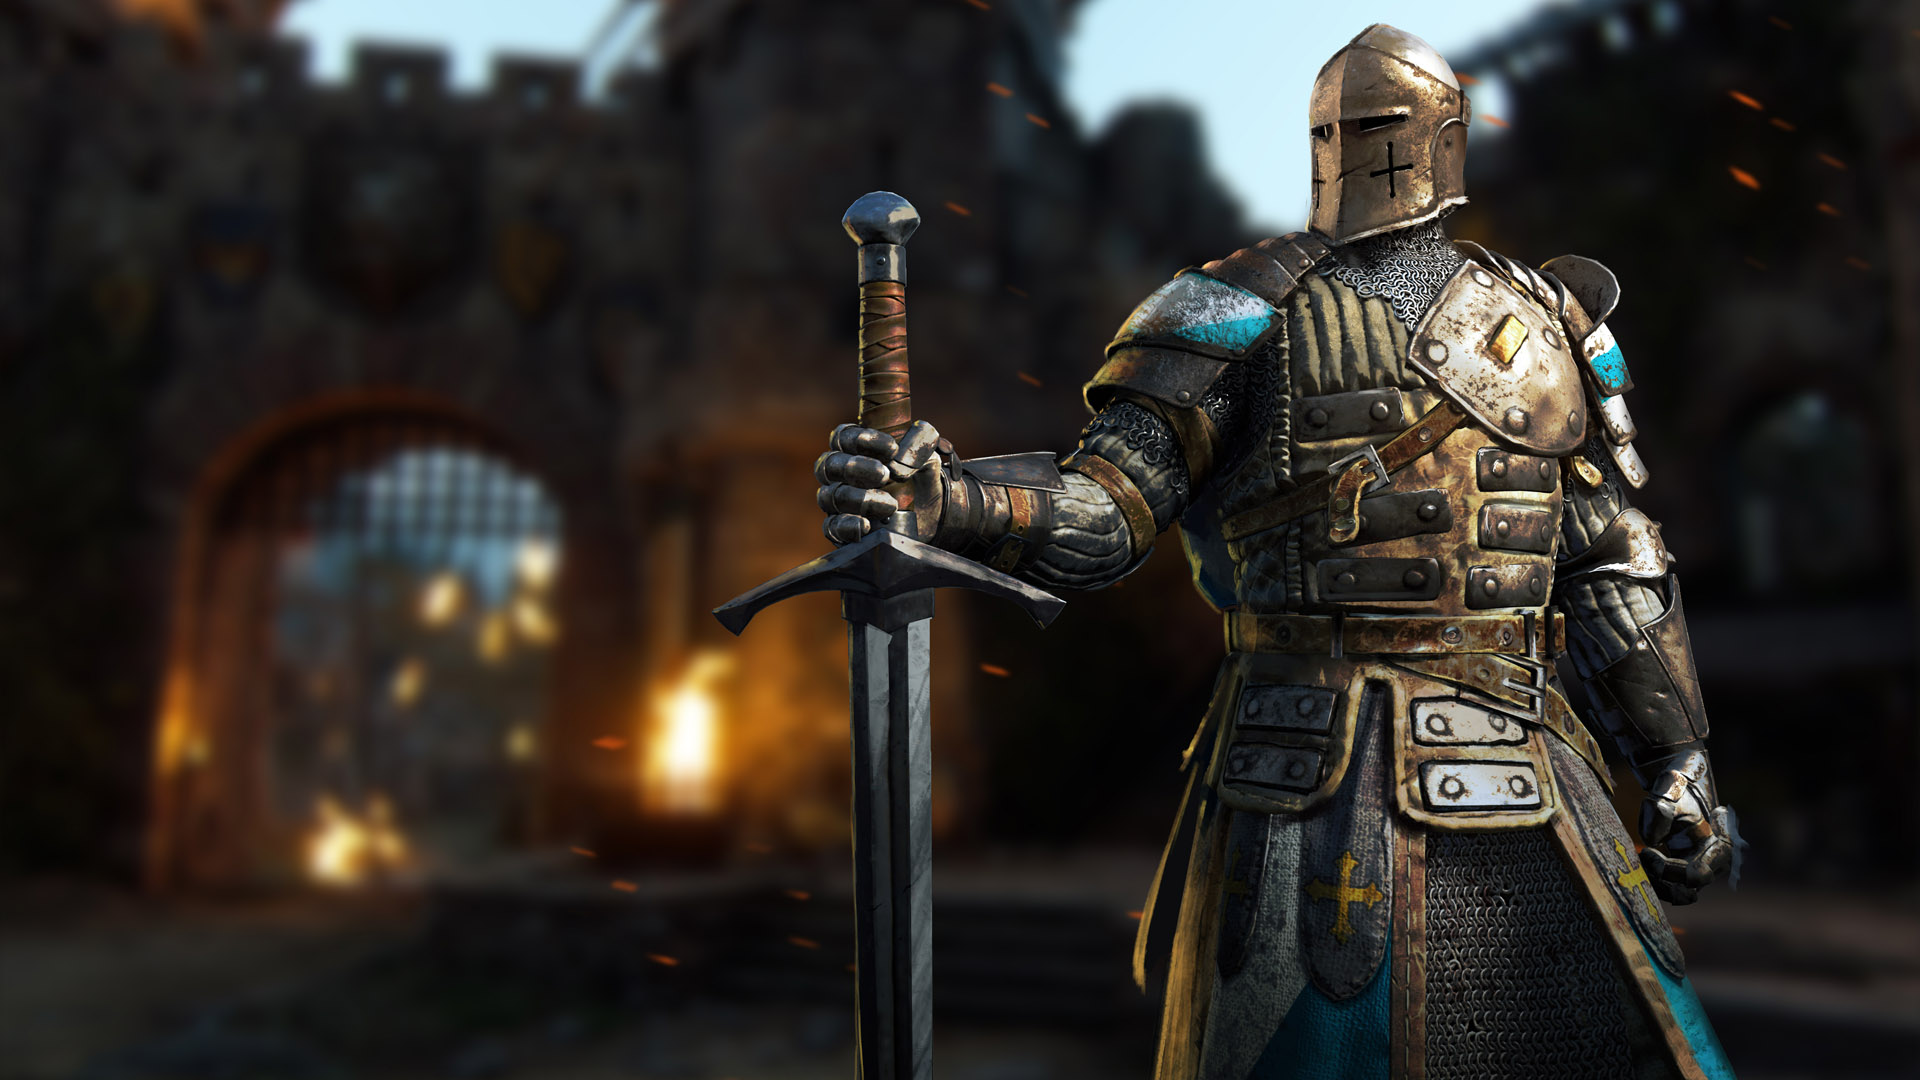 The Knights are a top contender for the best Faction in For Honor, thanks to the variety of characters on offer. The Warden and Peacekeeper are some of the best characters in For Honor.